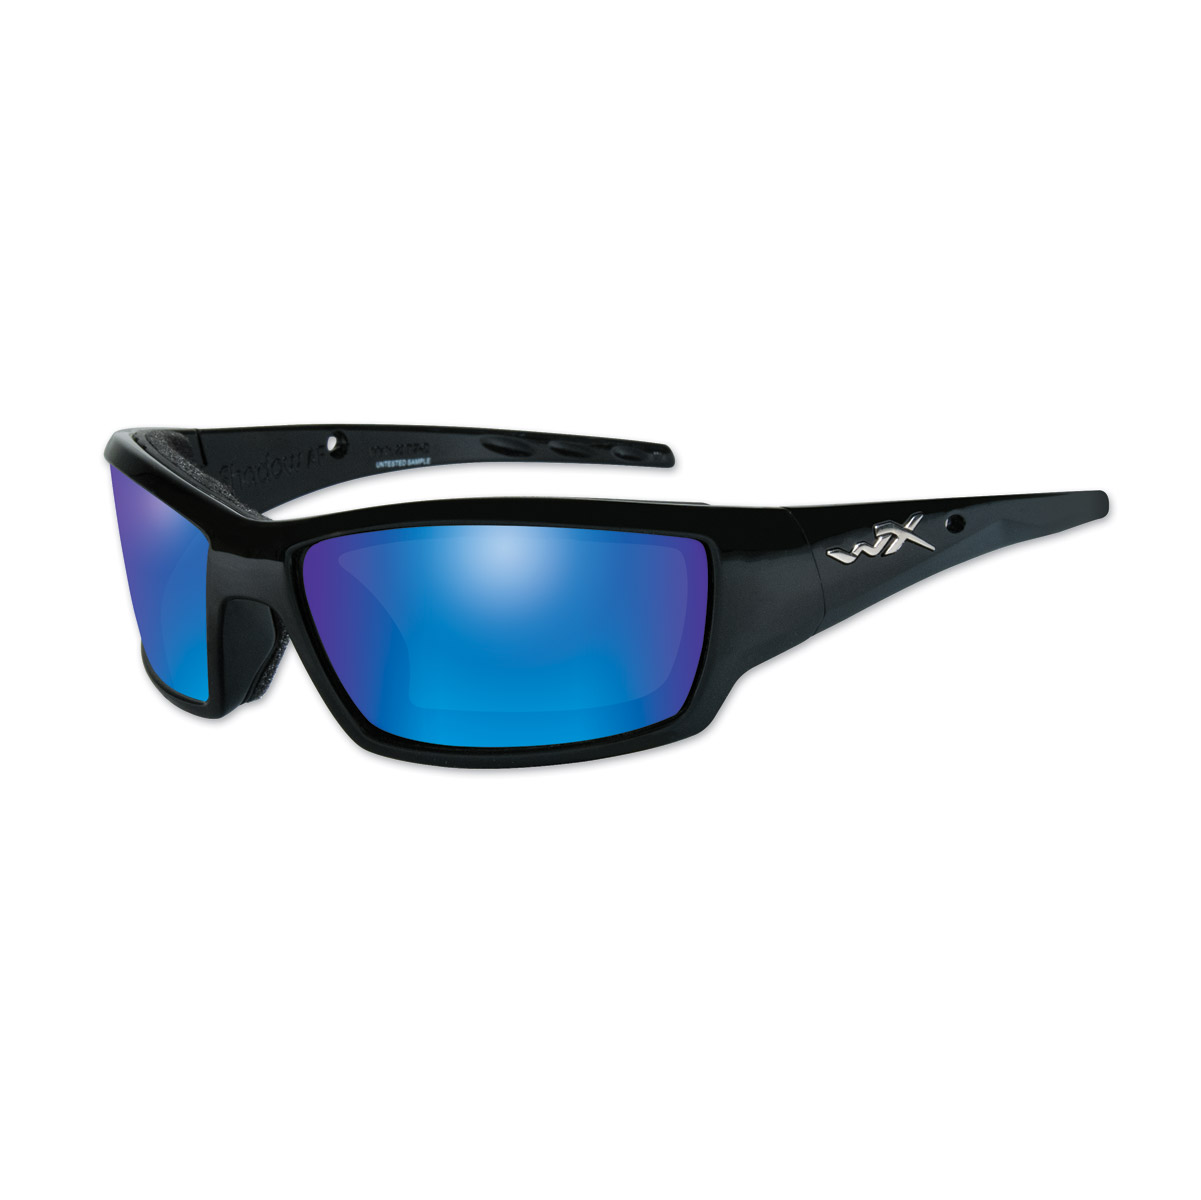 Wiley X WX Tide Gloss Black Frame w/Blue Mirror Lens Sunglasses